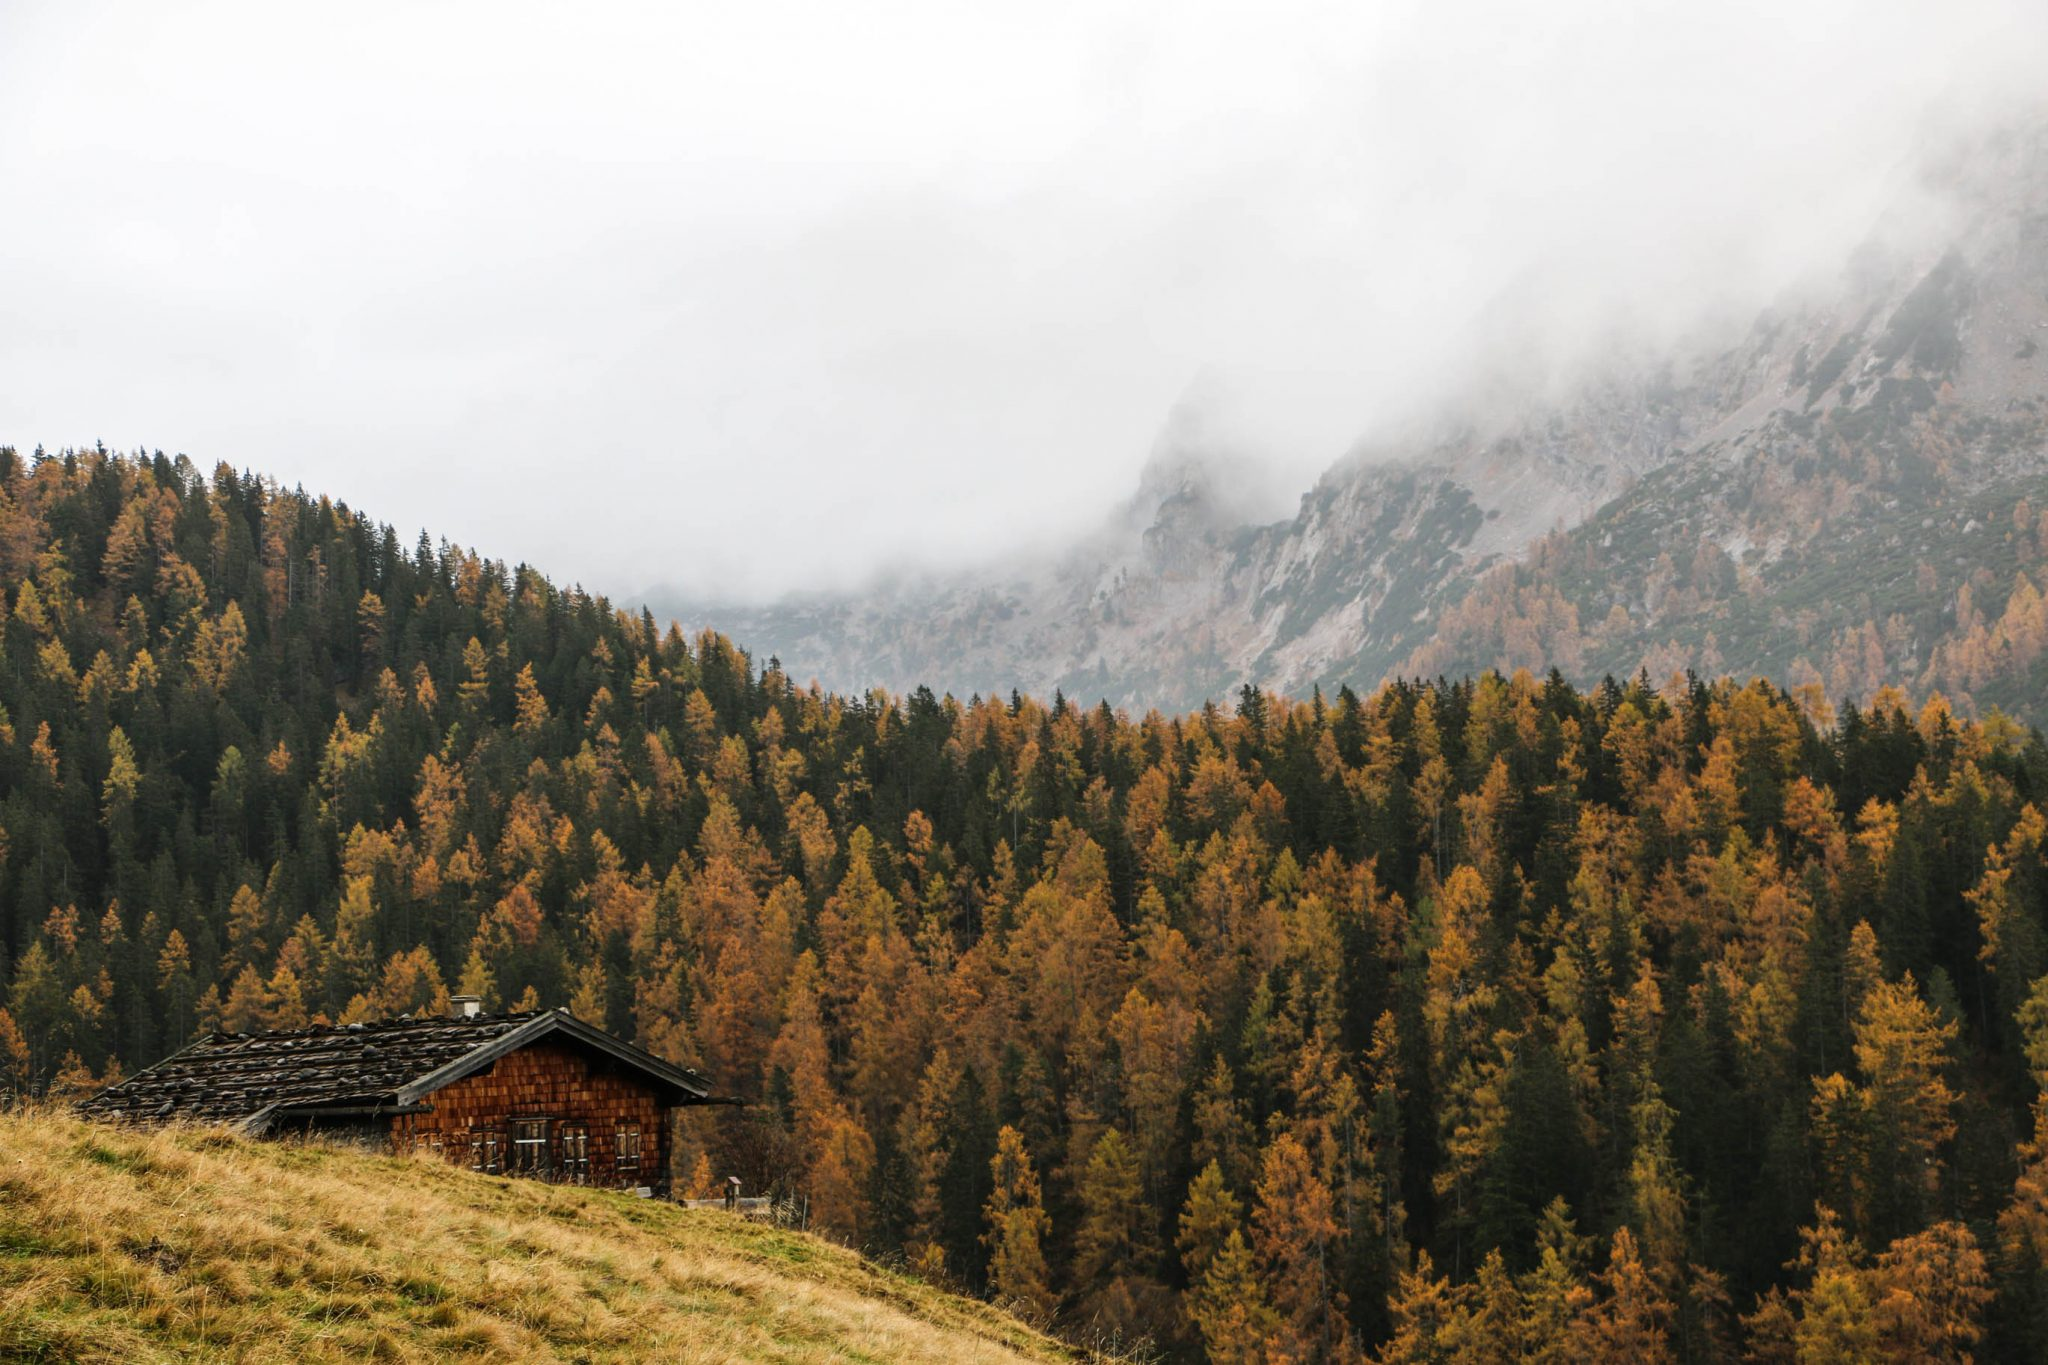 foggy mountainrange with cabin in autumn